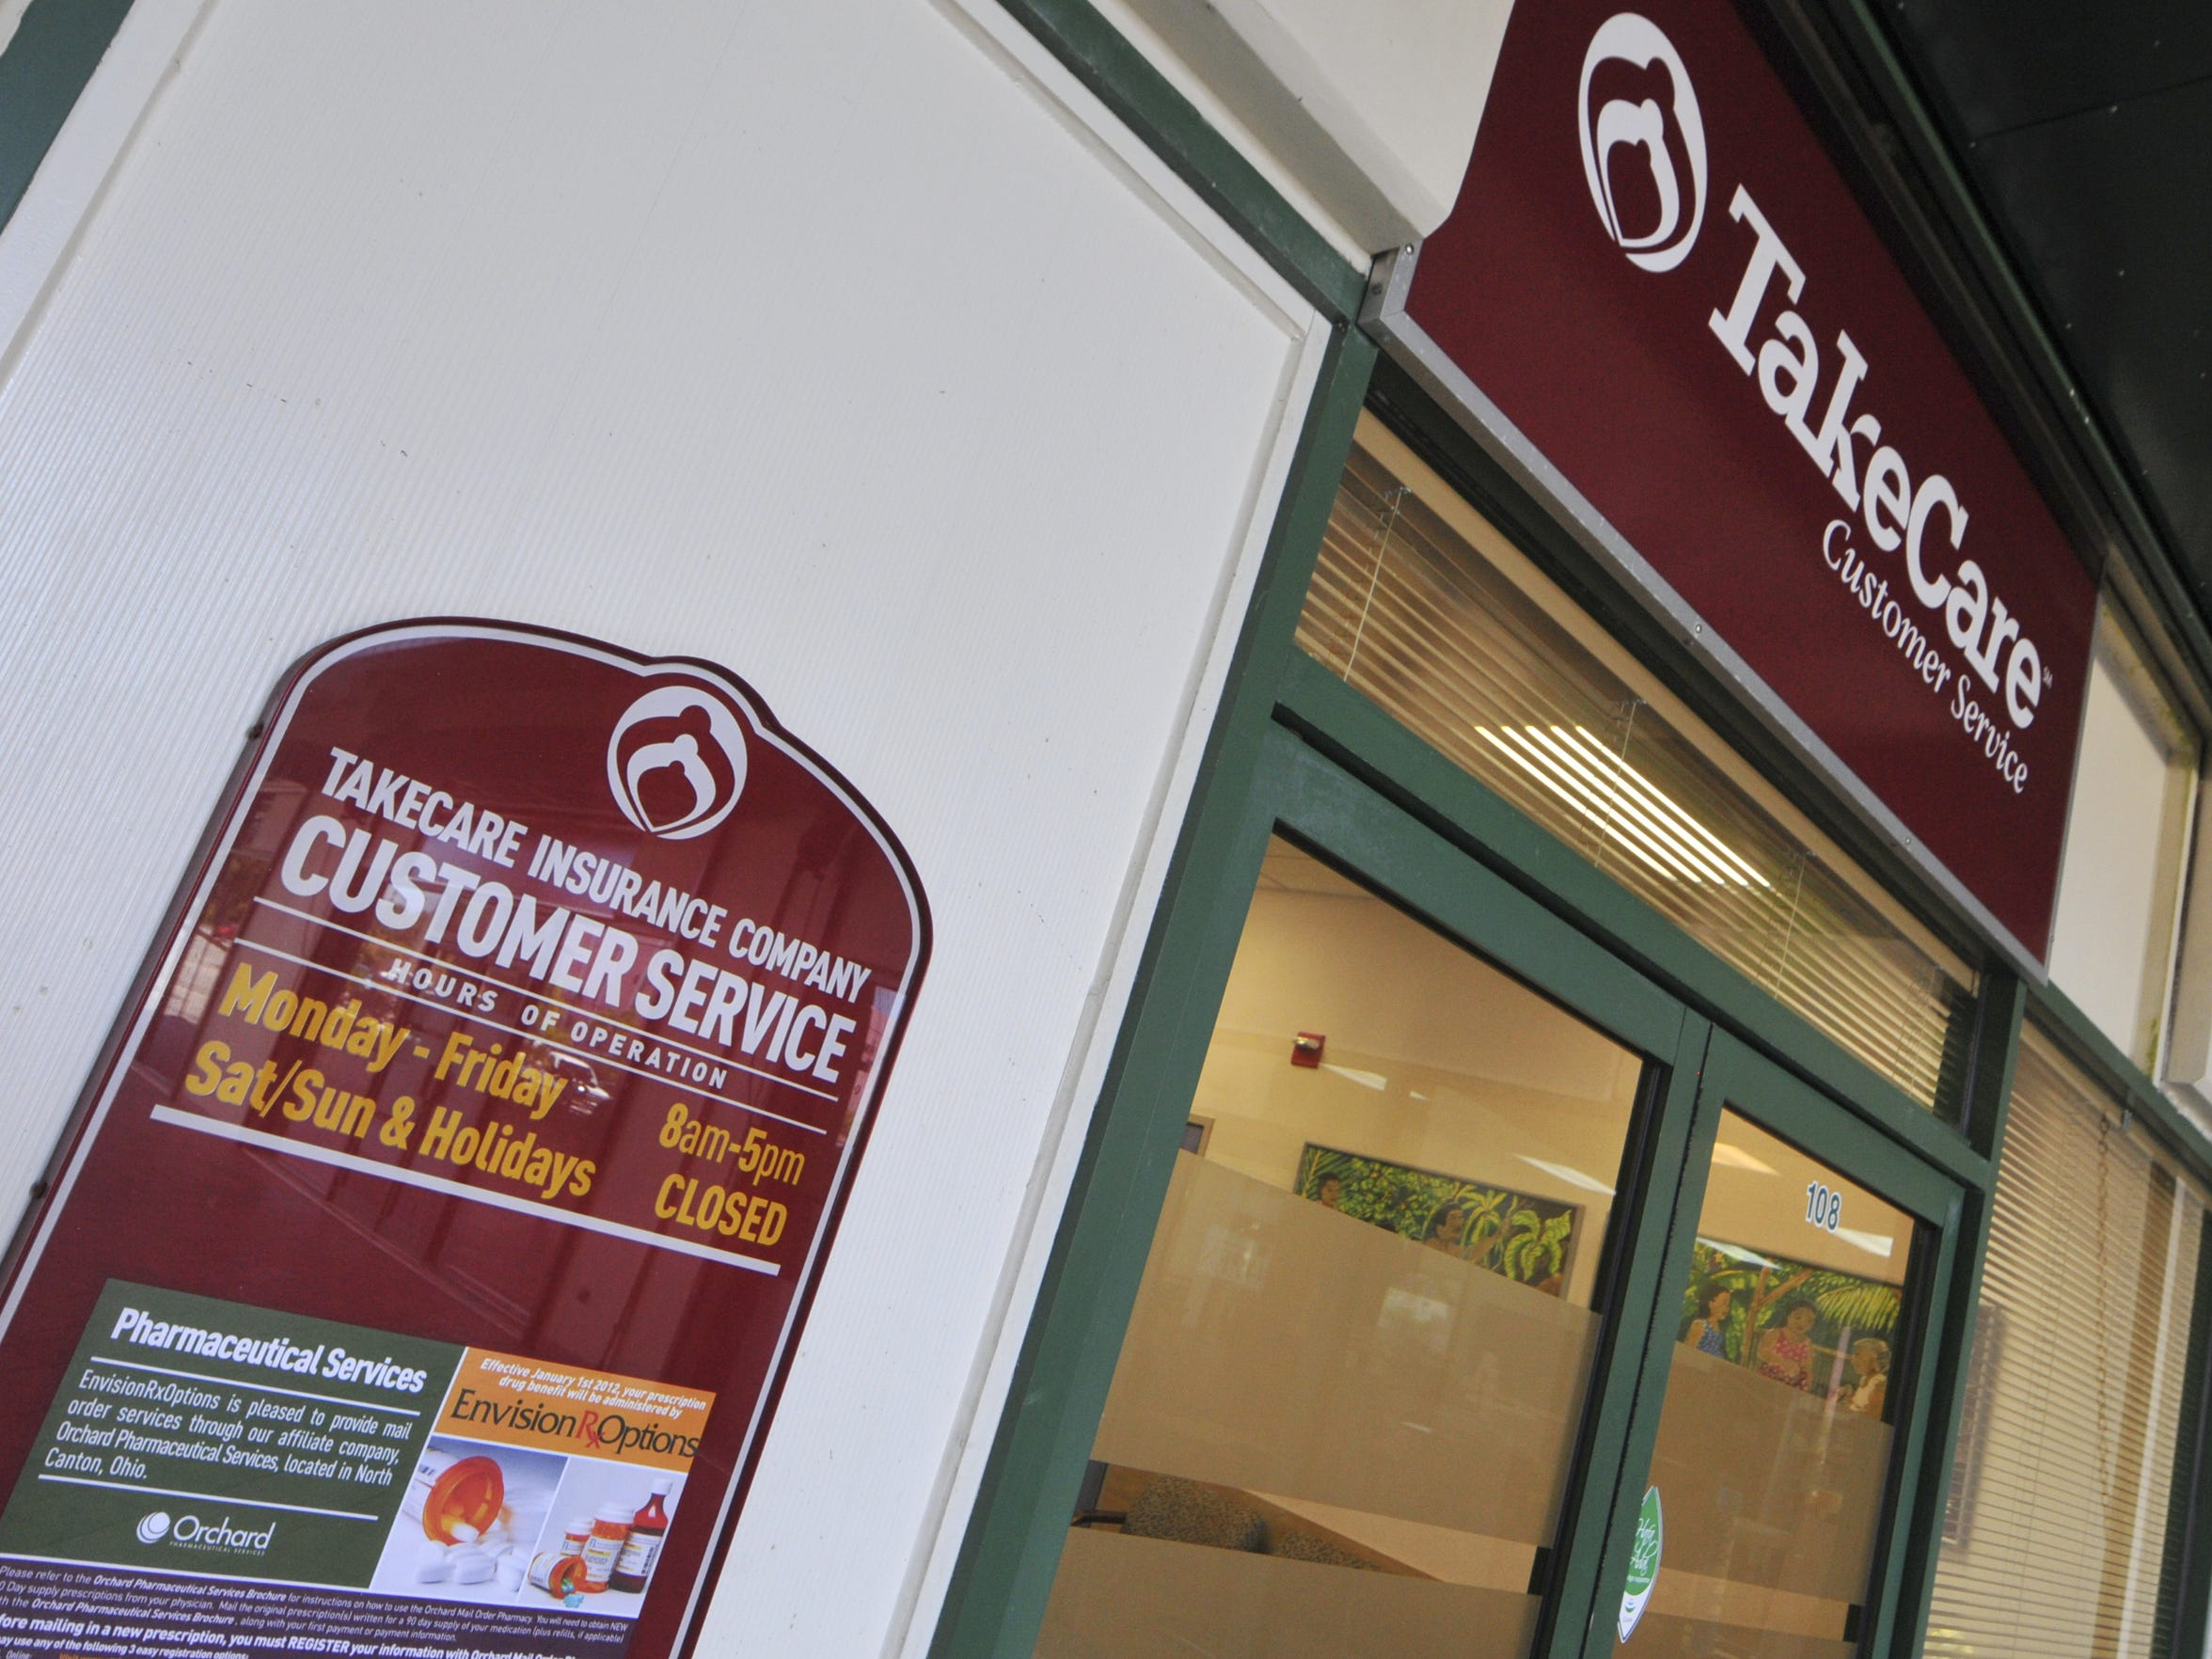 The TakeCare Customer Service office at the Baltej